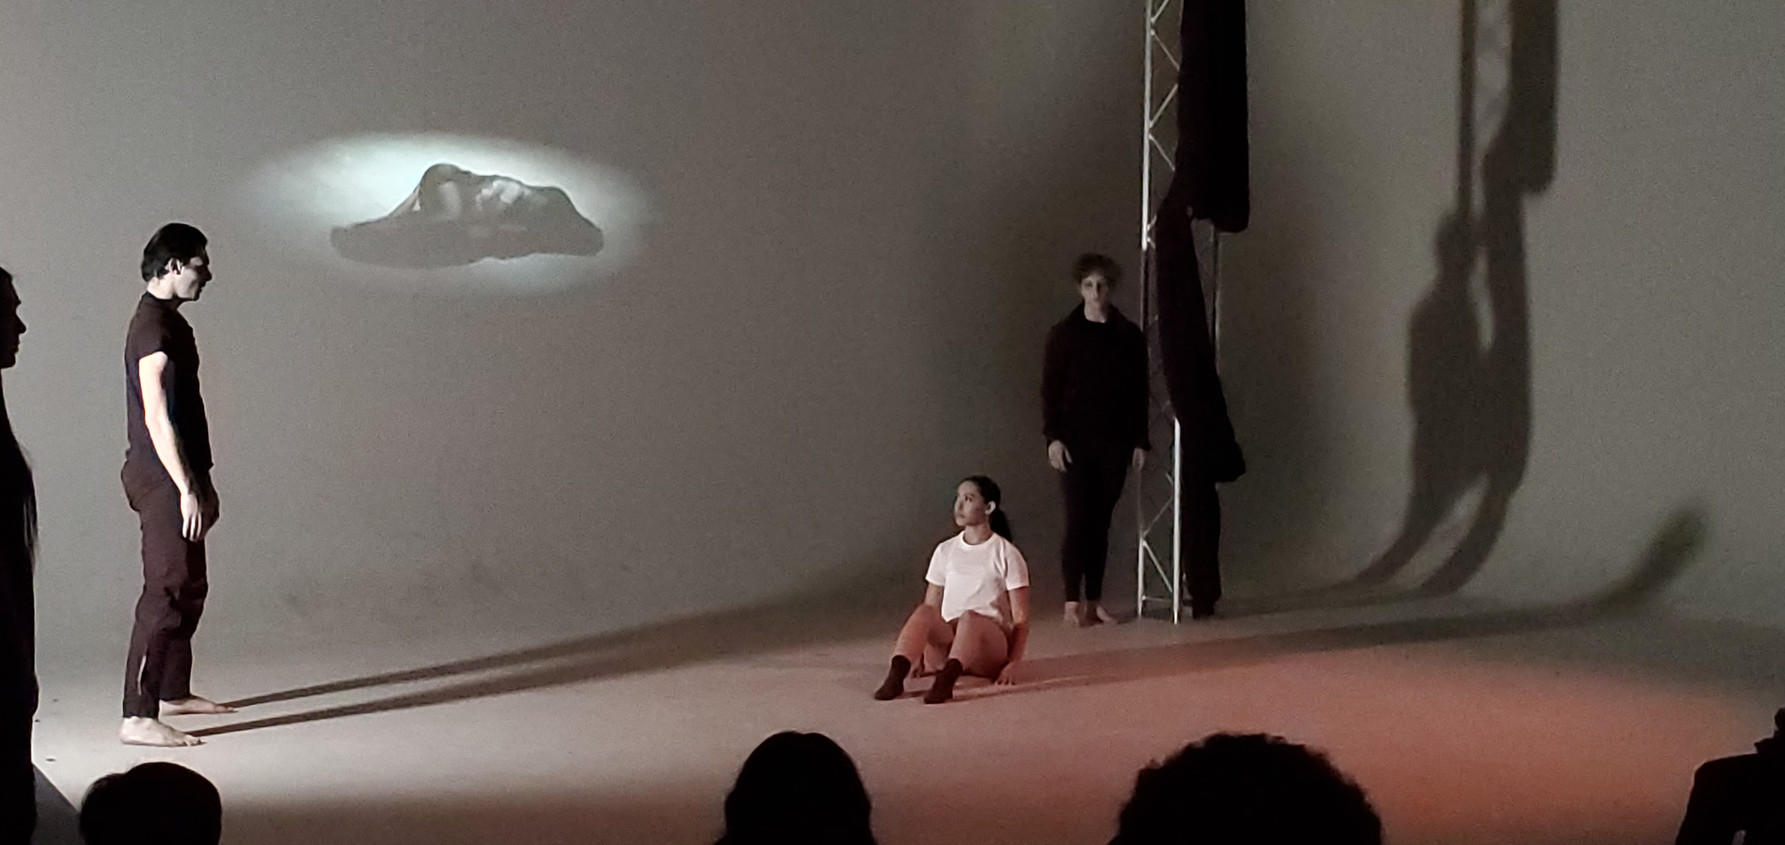 Lost Children, a contemporary dancee and music thesis